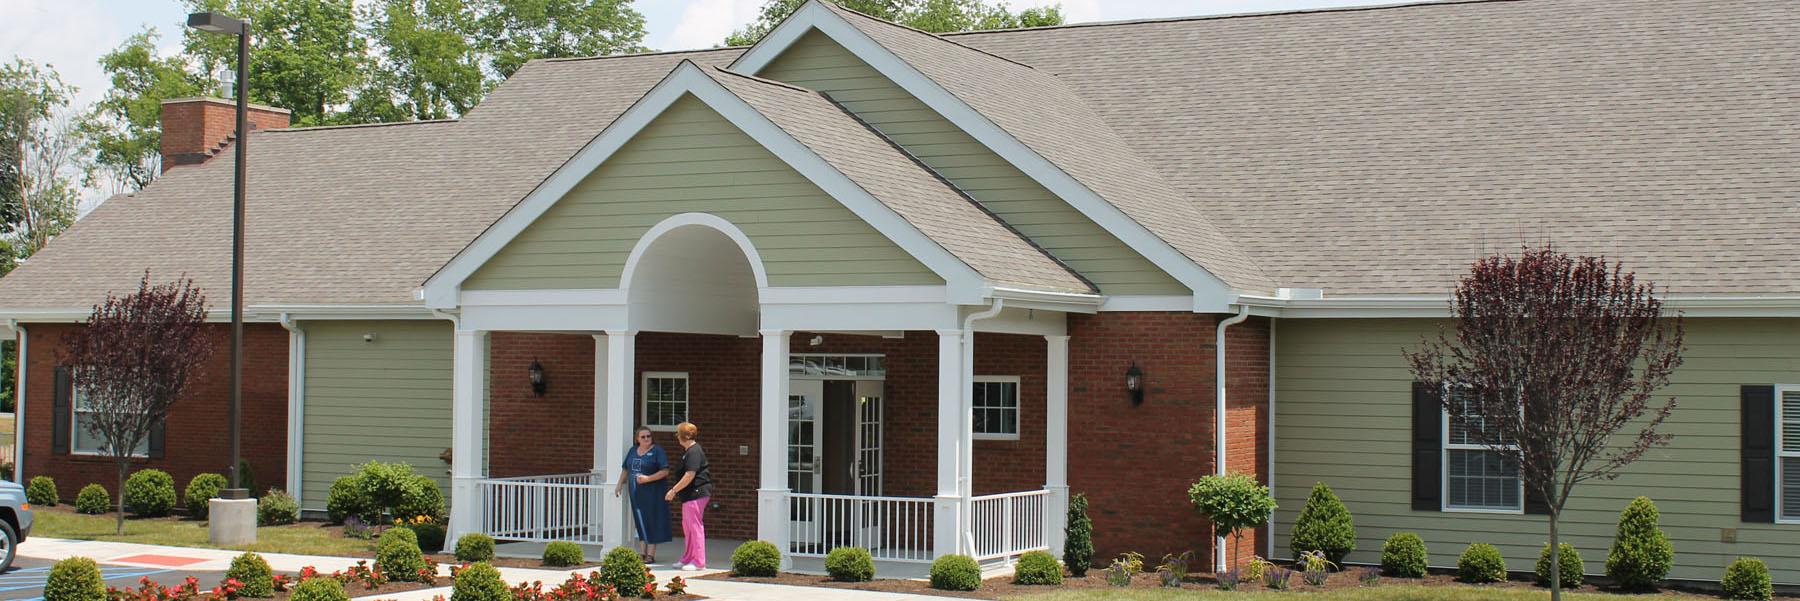 Peyton Hospice House (Lewisburg/Greenbrier Valley)